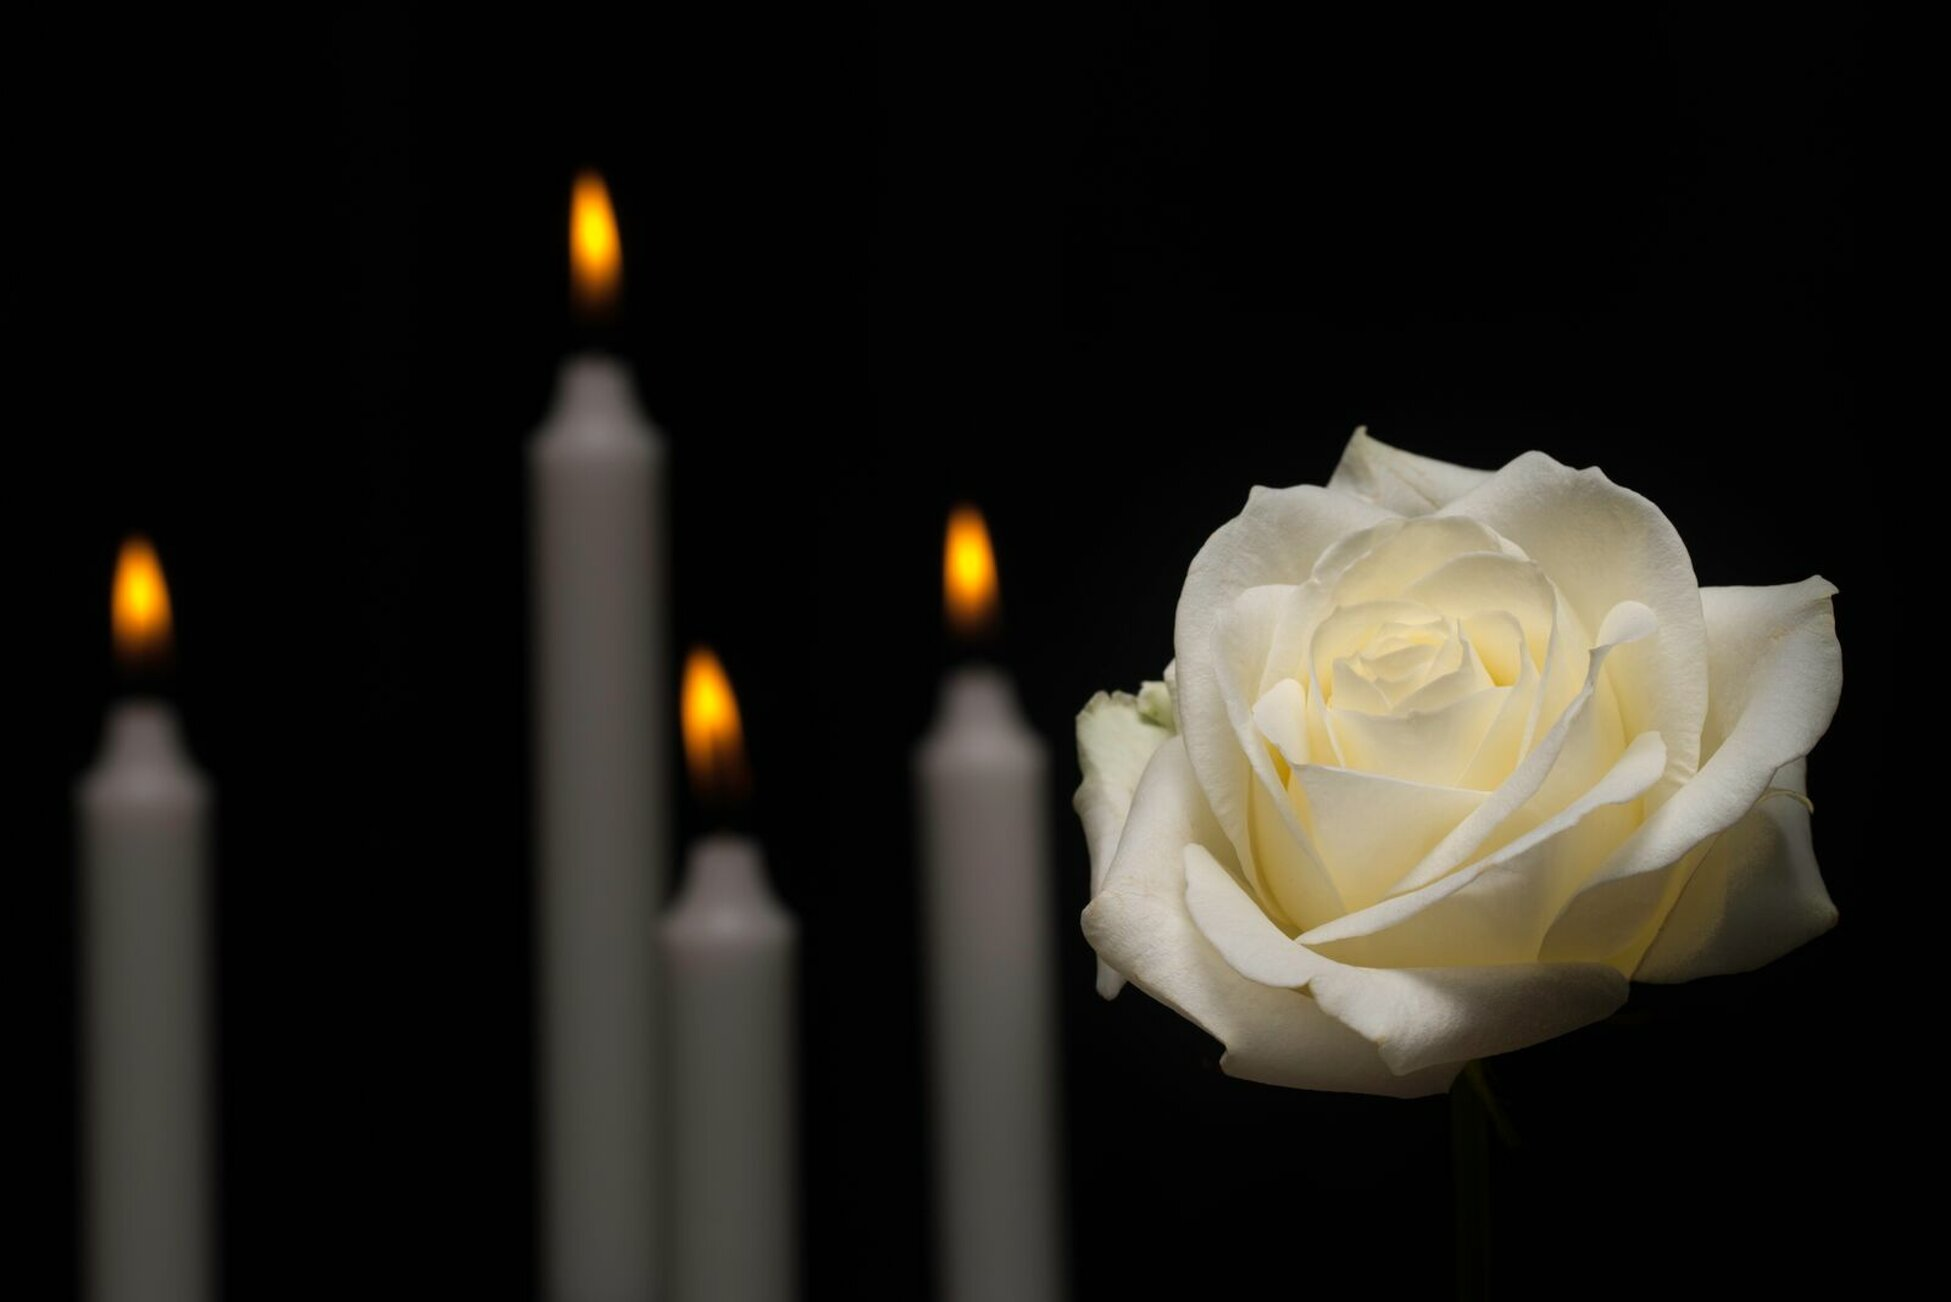 large-white-rose-in-front-of-candles.-5332625755731x3825preview.jpeg